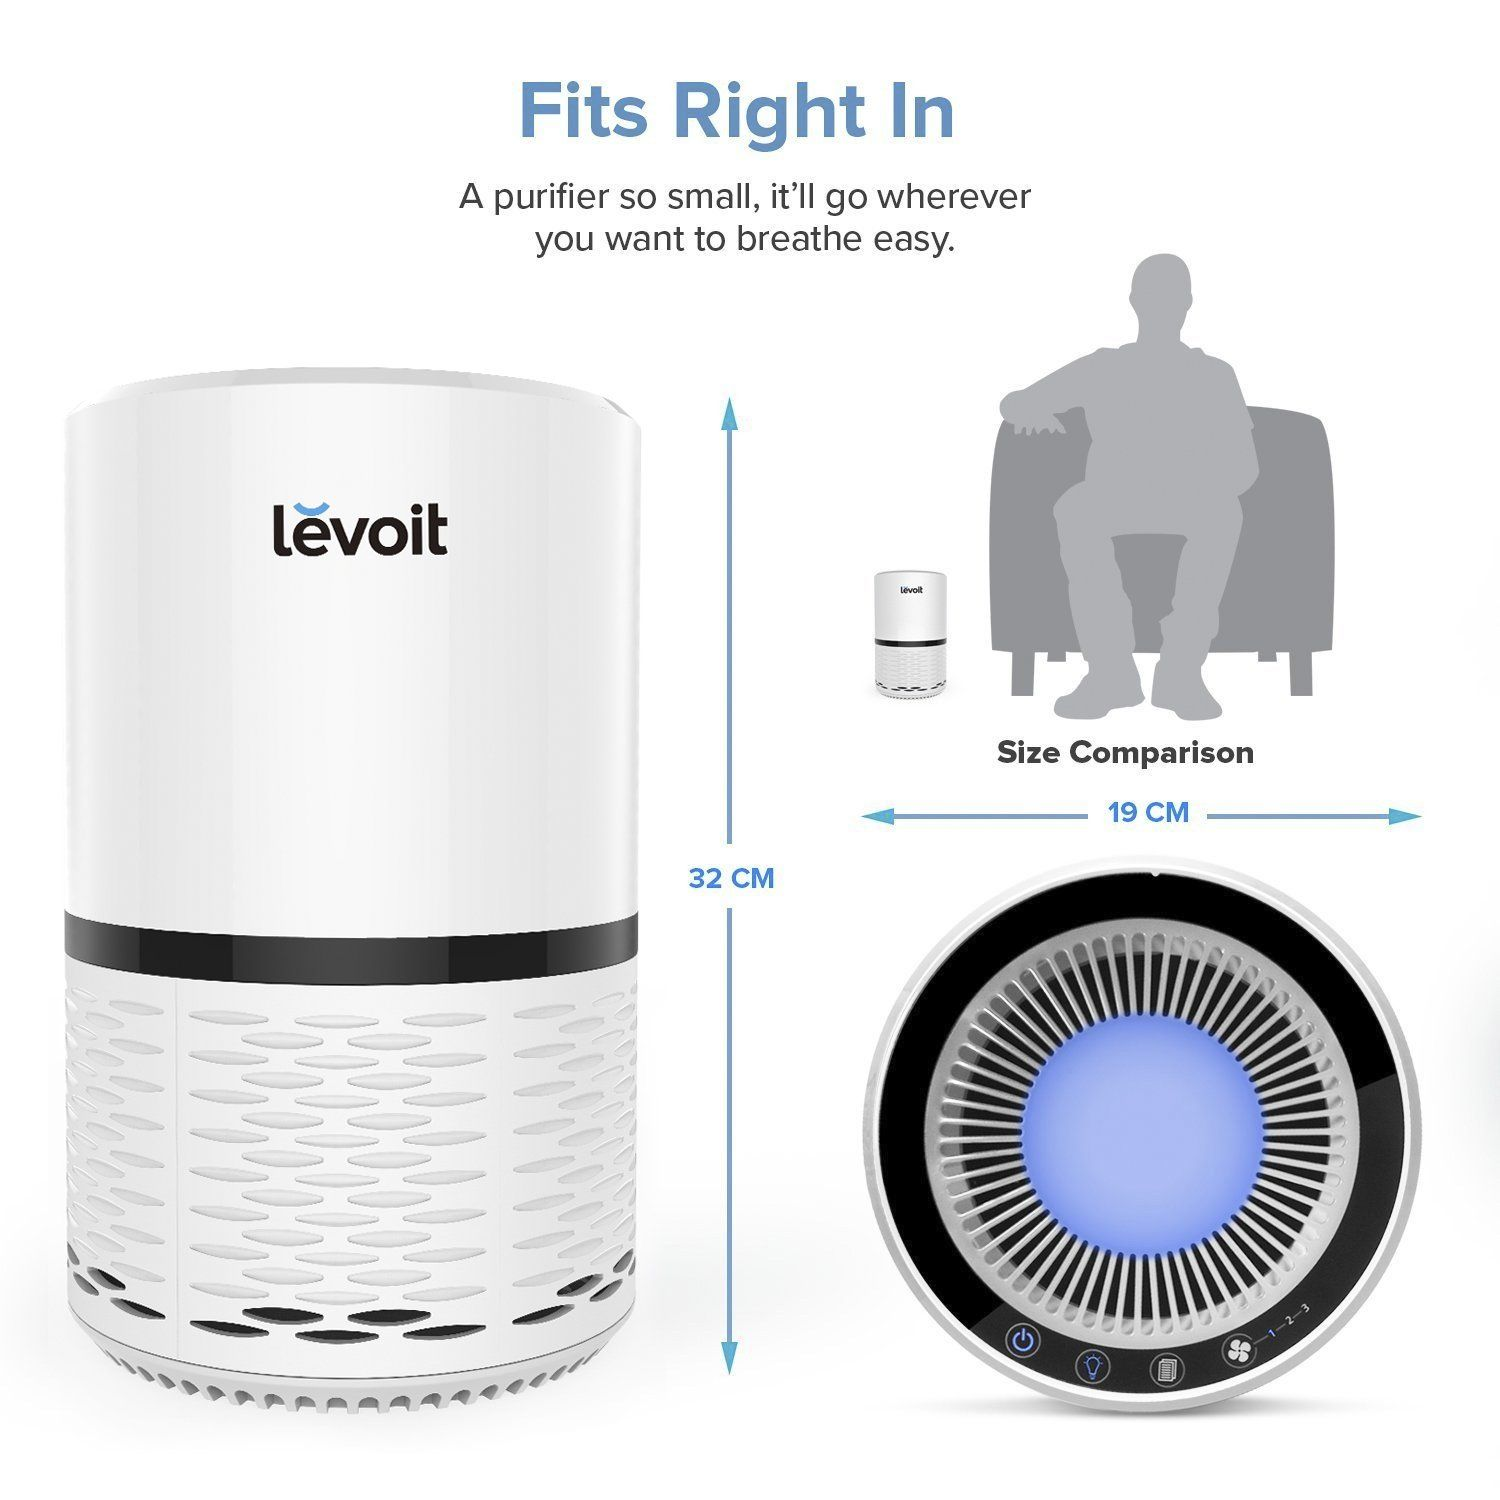 Levoit Lvh132 Air Purifier Filtration With True Hepa Filter Odor Allergies Allergen Eliminator Cleaner For Room Home Pets Smoke D Air Purifier Hepa Filter Hepa